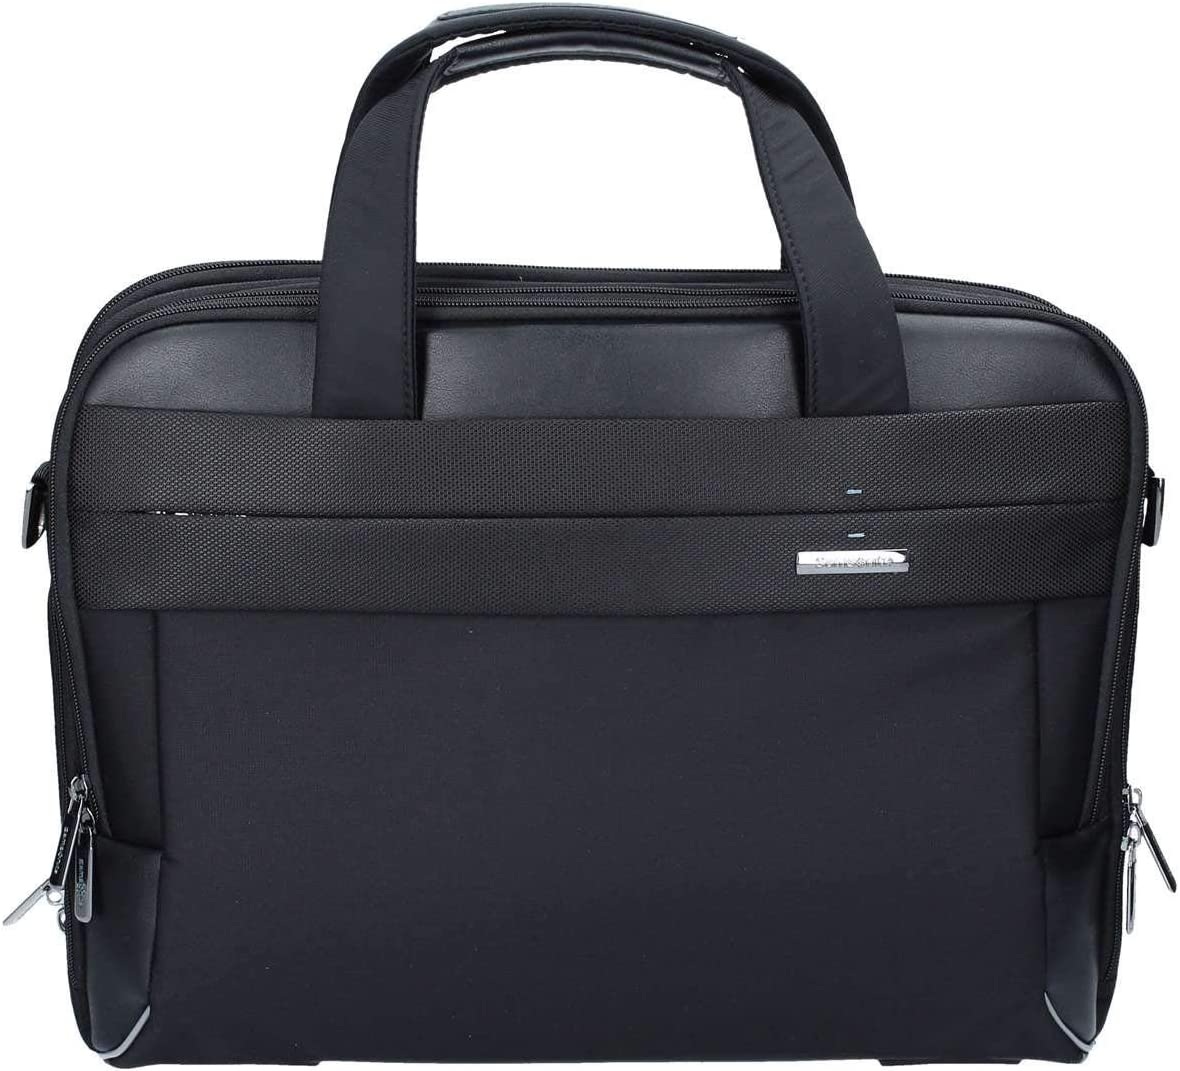 Samsonite Hand Luggage, Black